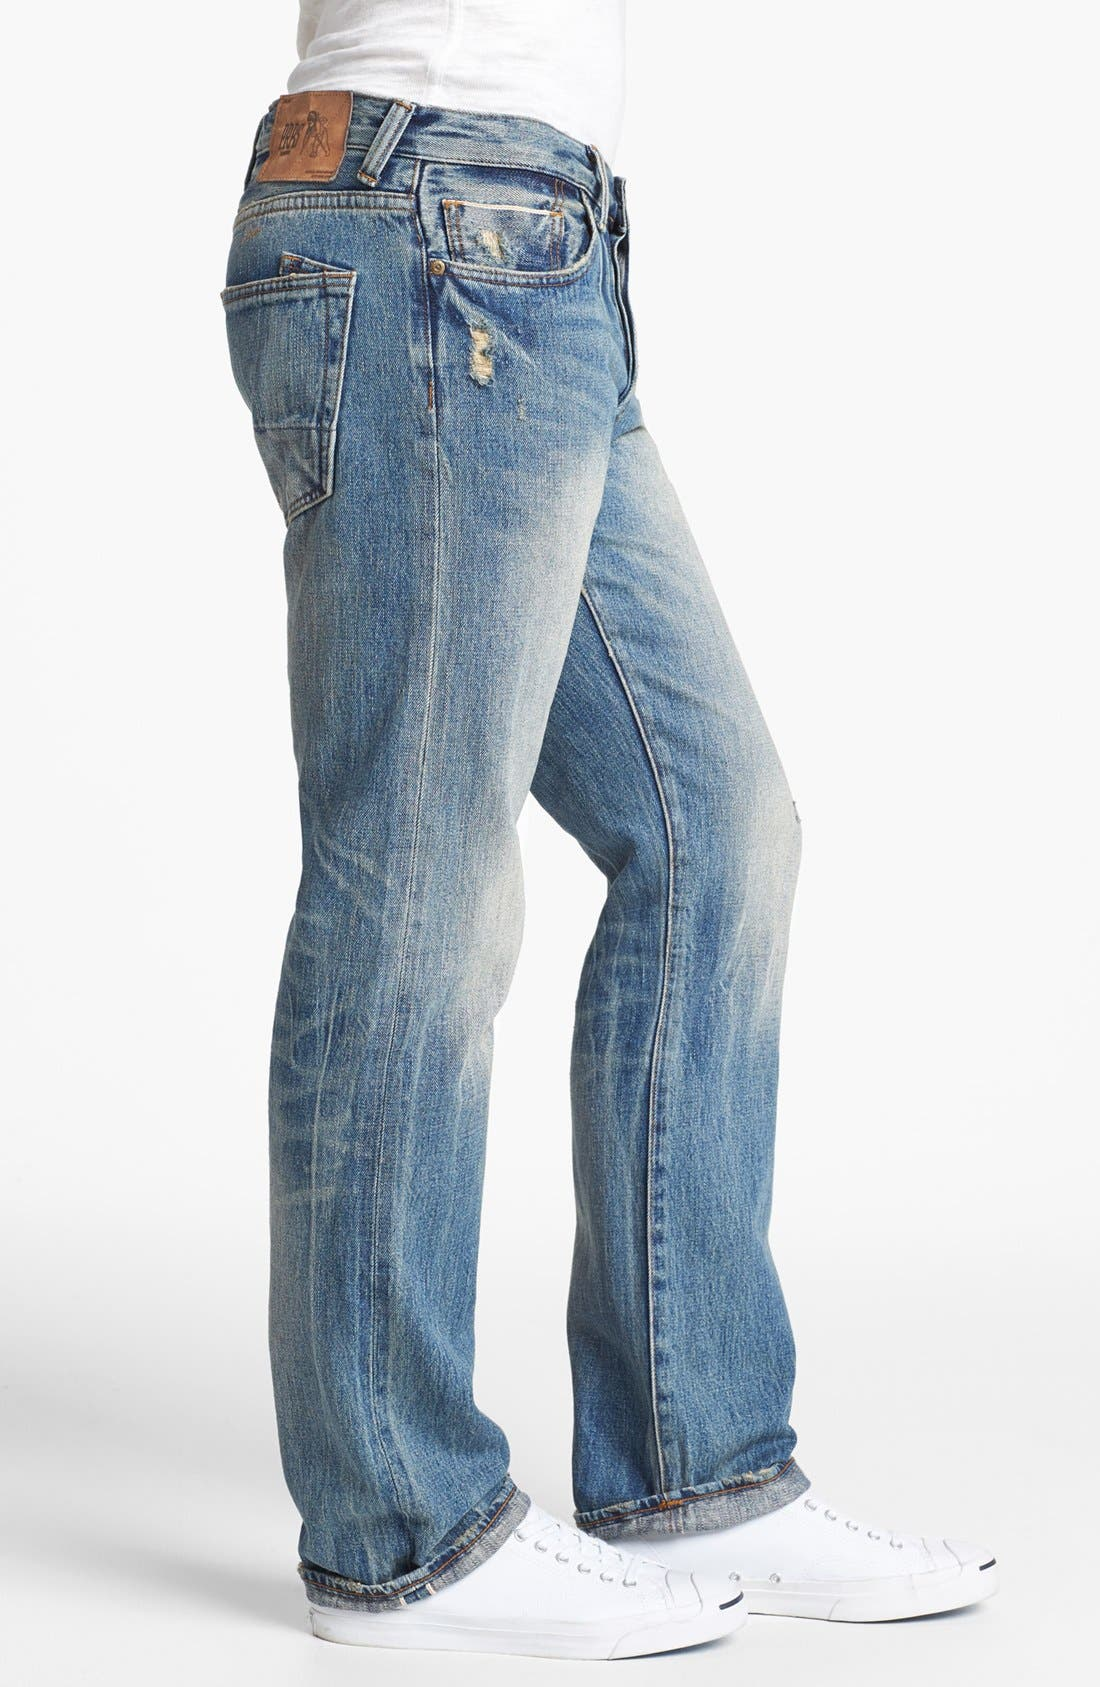 'Barracuda' Straight Leg Selvedge Jeans,                             Alternate thumbnail 4, color,                             450